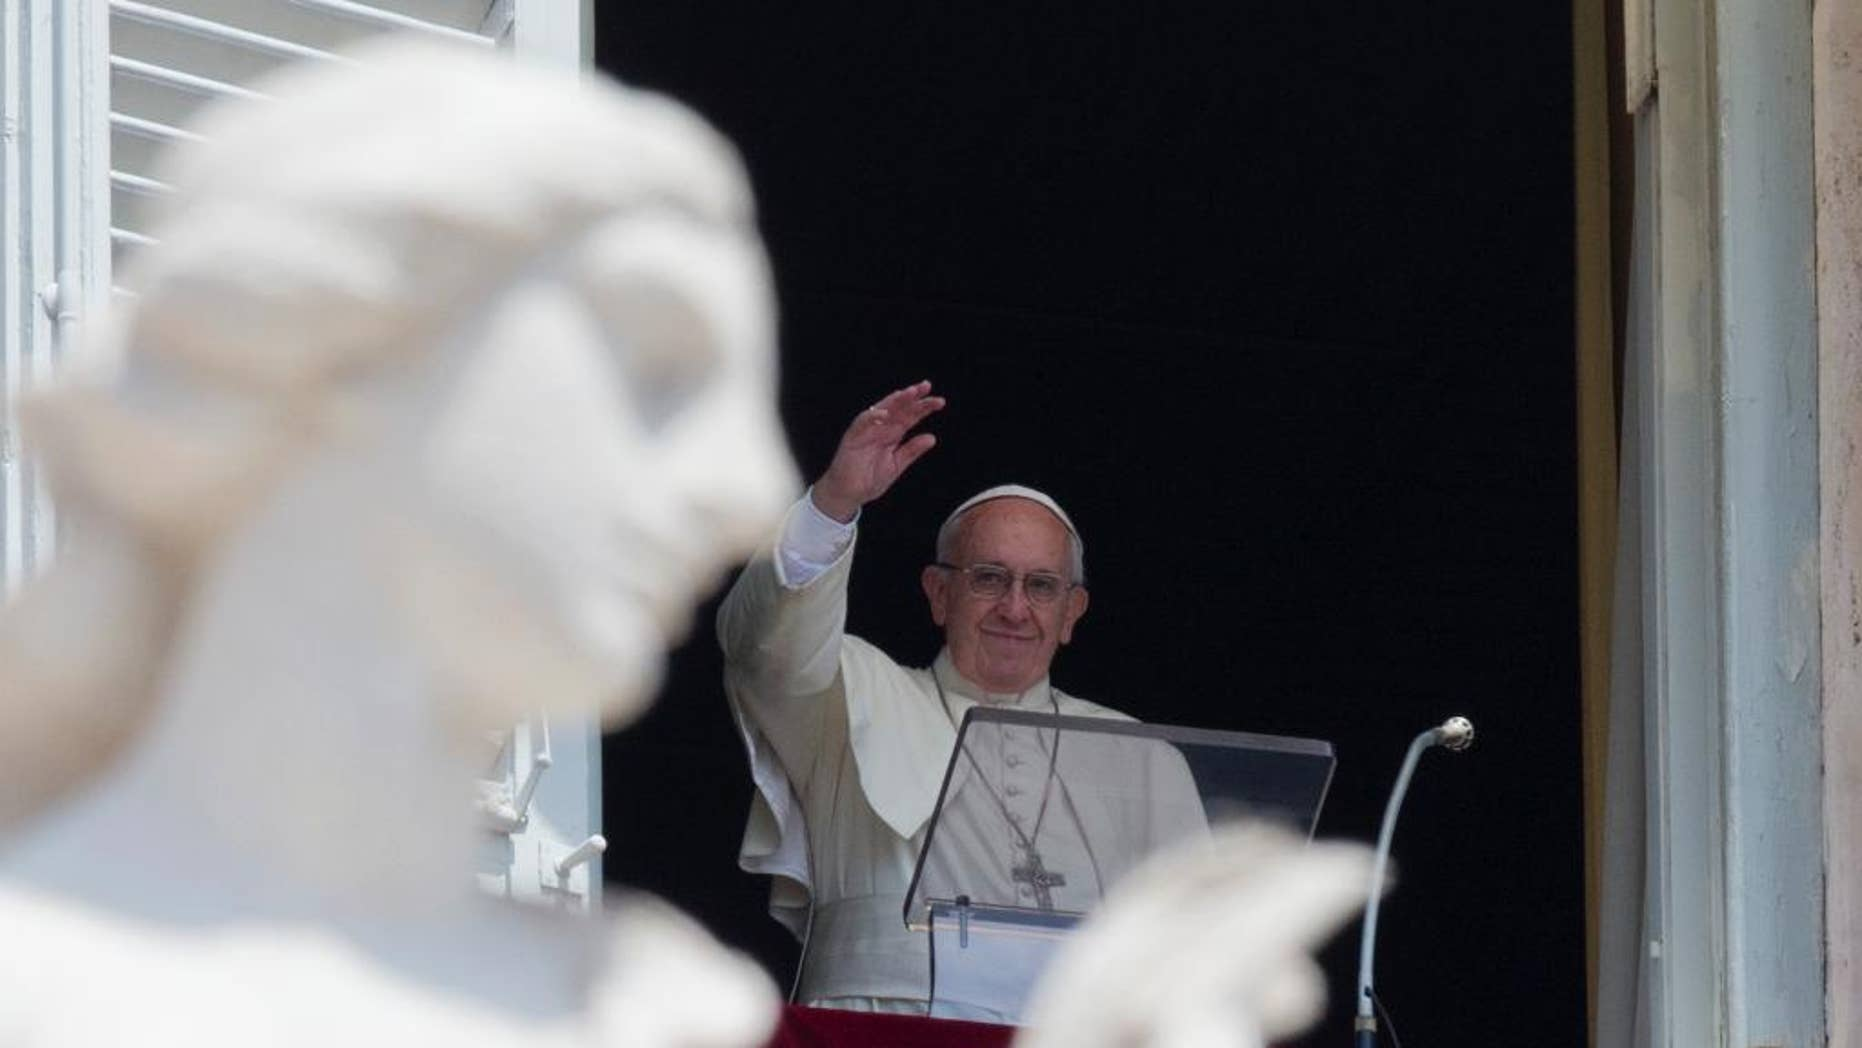 Pope Francis delivers his blessing during the Angelus noon prayer he celebrated from the window of his studio overlooking St. Peter's Square, at the Vatican, Sunday, July 10, 2016. (AP Photo/Andrew Medichini)